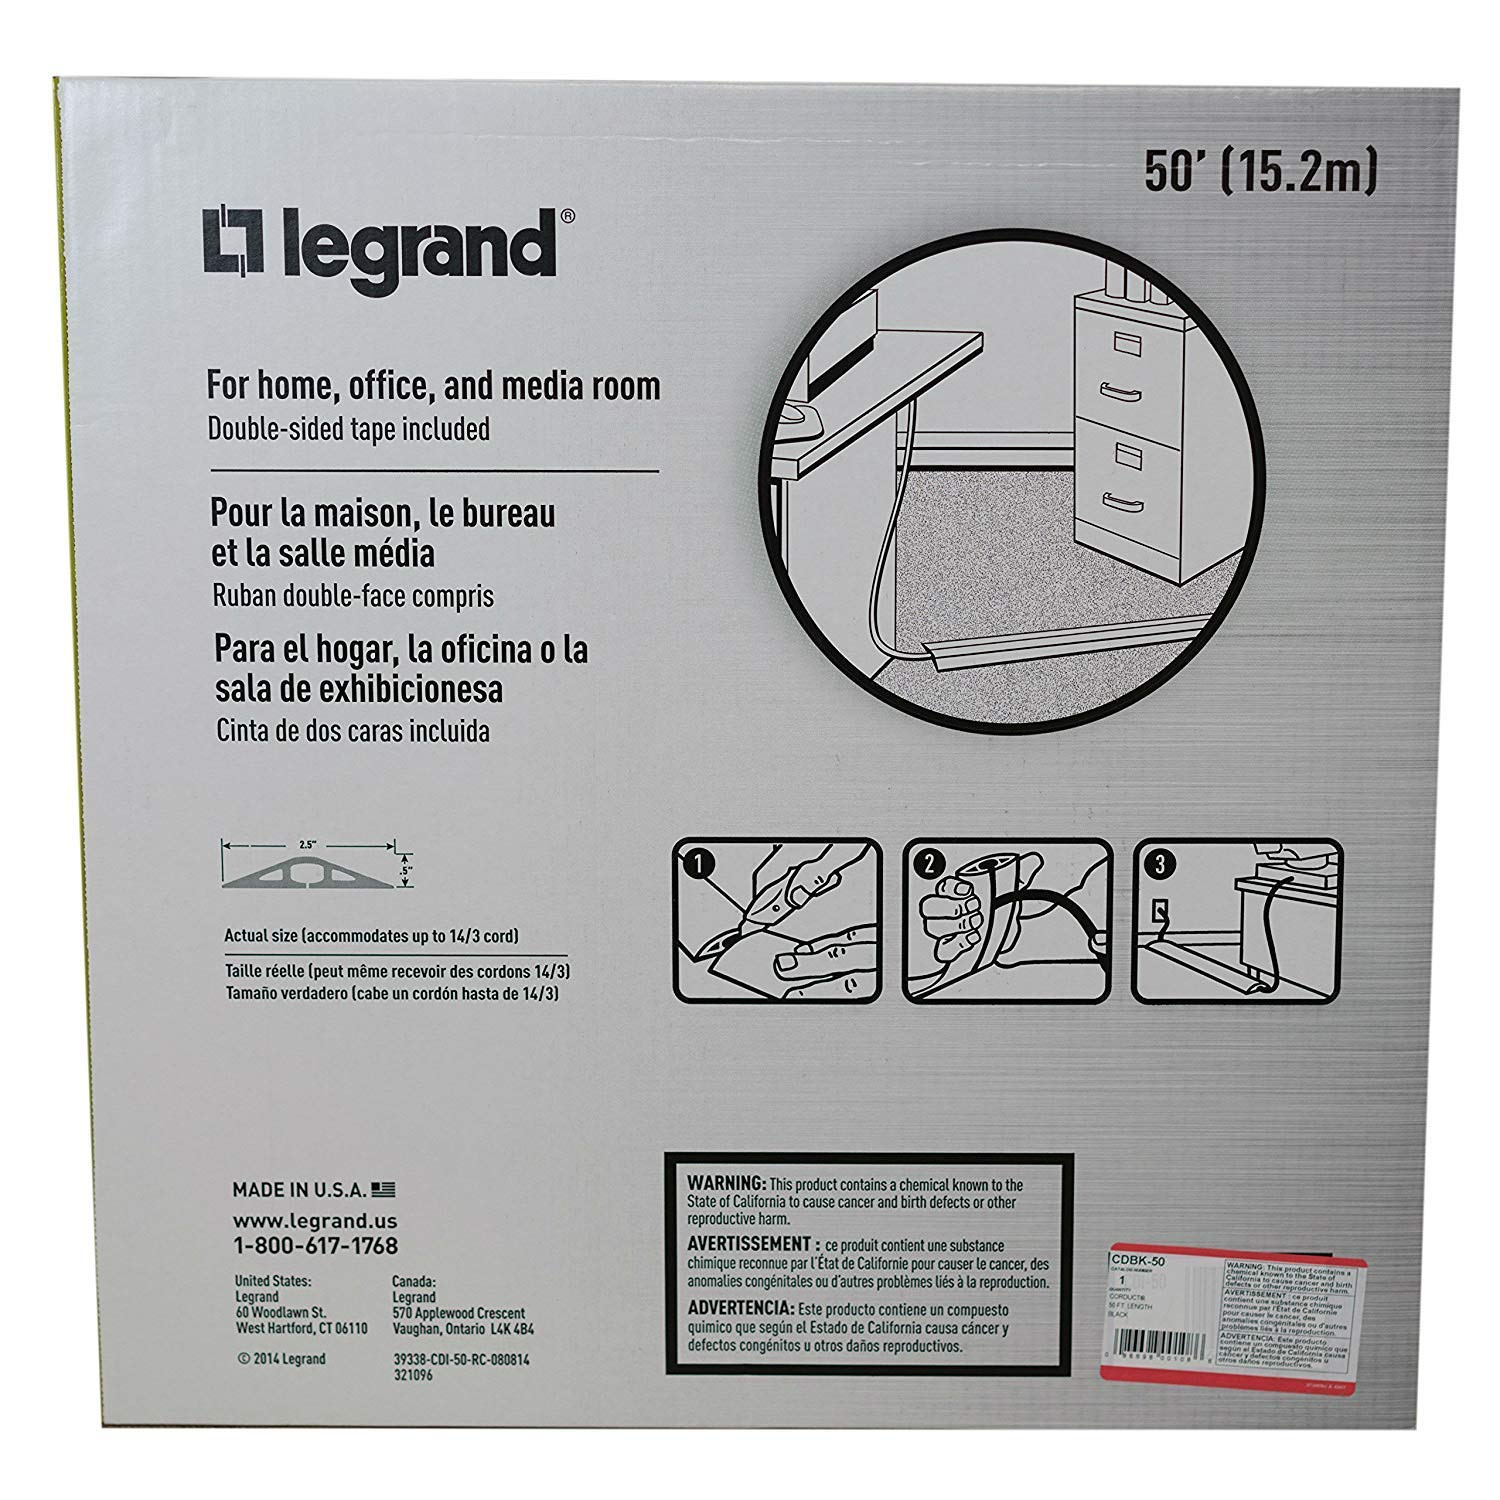 Legrand - Wiremold CDBK-50 Corduct Overfloor Cord Protector-  Rubber Duct Floor Cord Cover, Black (50 Feet) by Wiremold (Image #8)